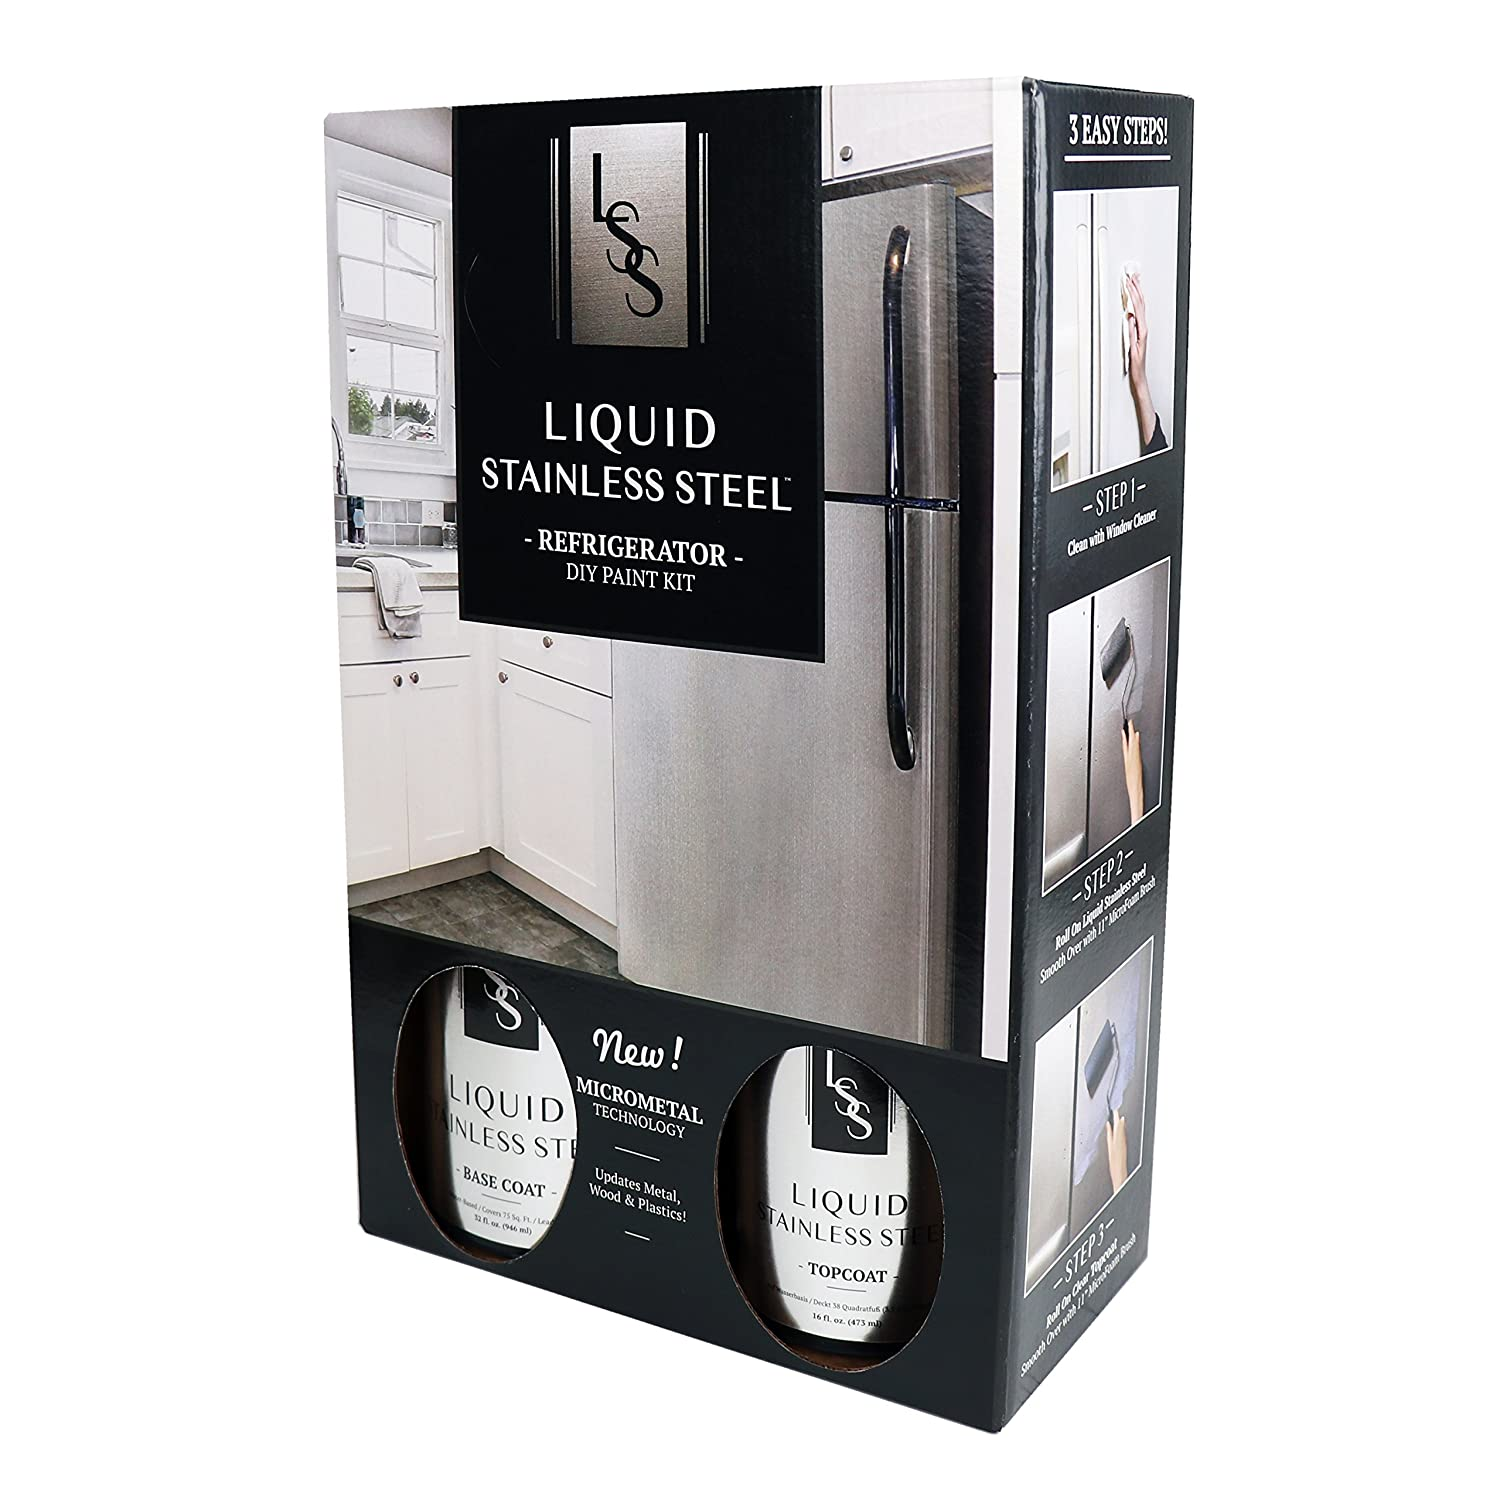 Liquid Stainless Fridge Kit Stainless Steel